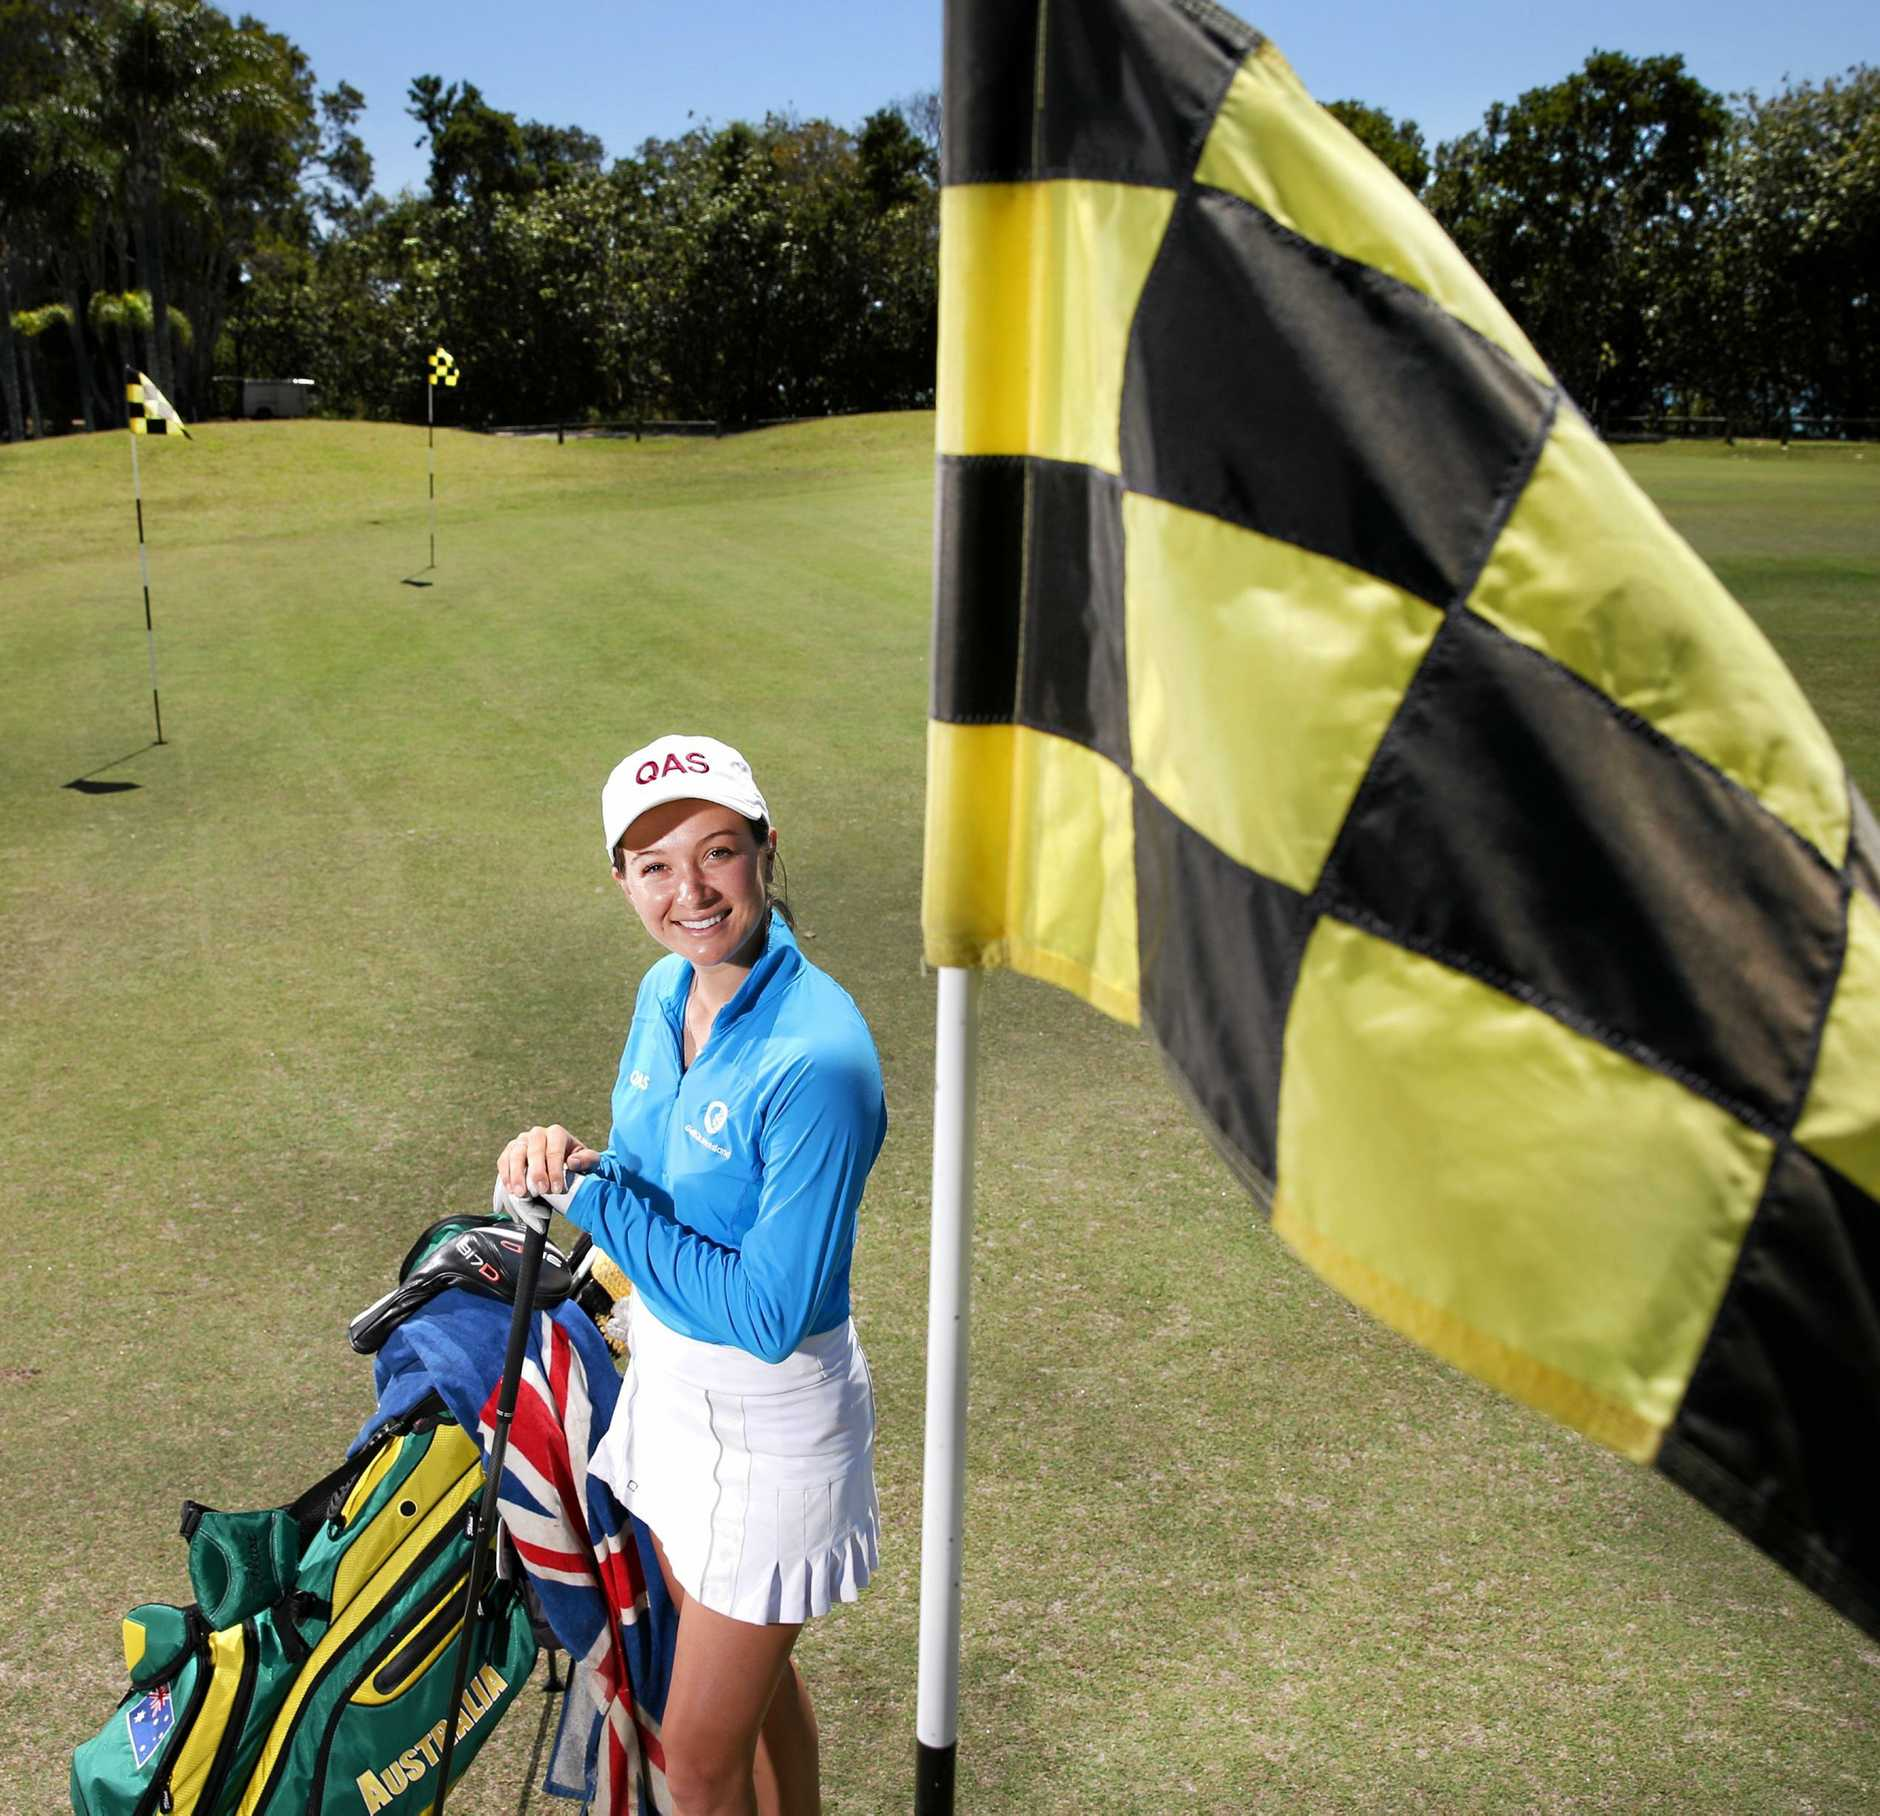 Becky Kay is the 89th ranked amateur in the world.